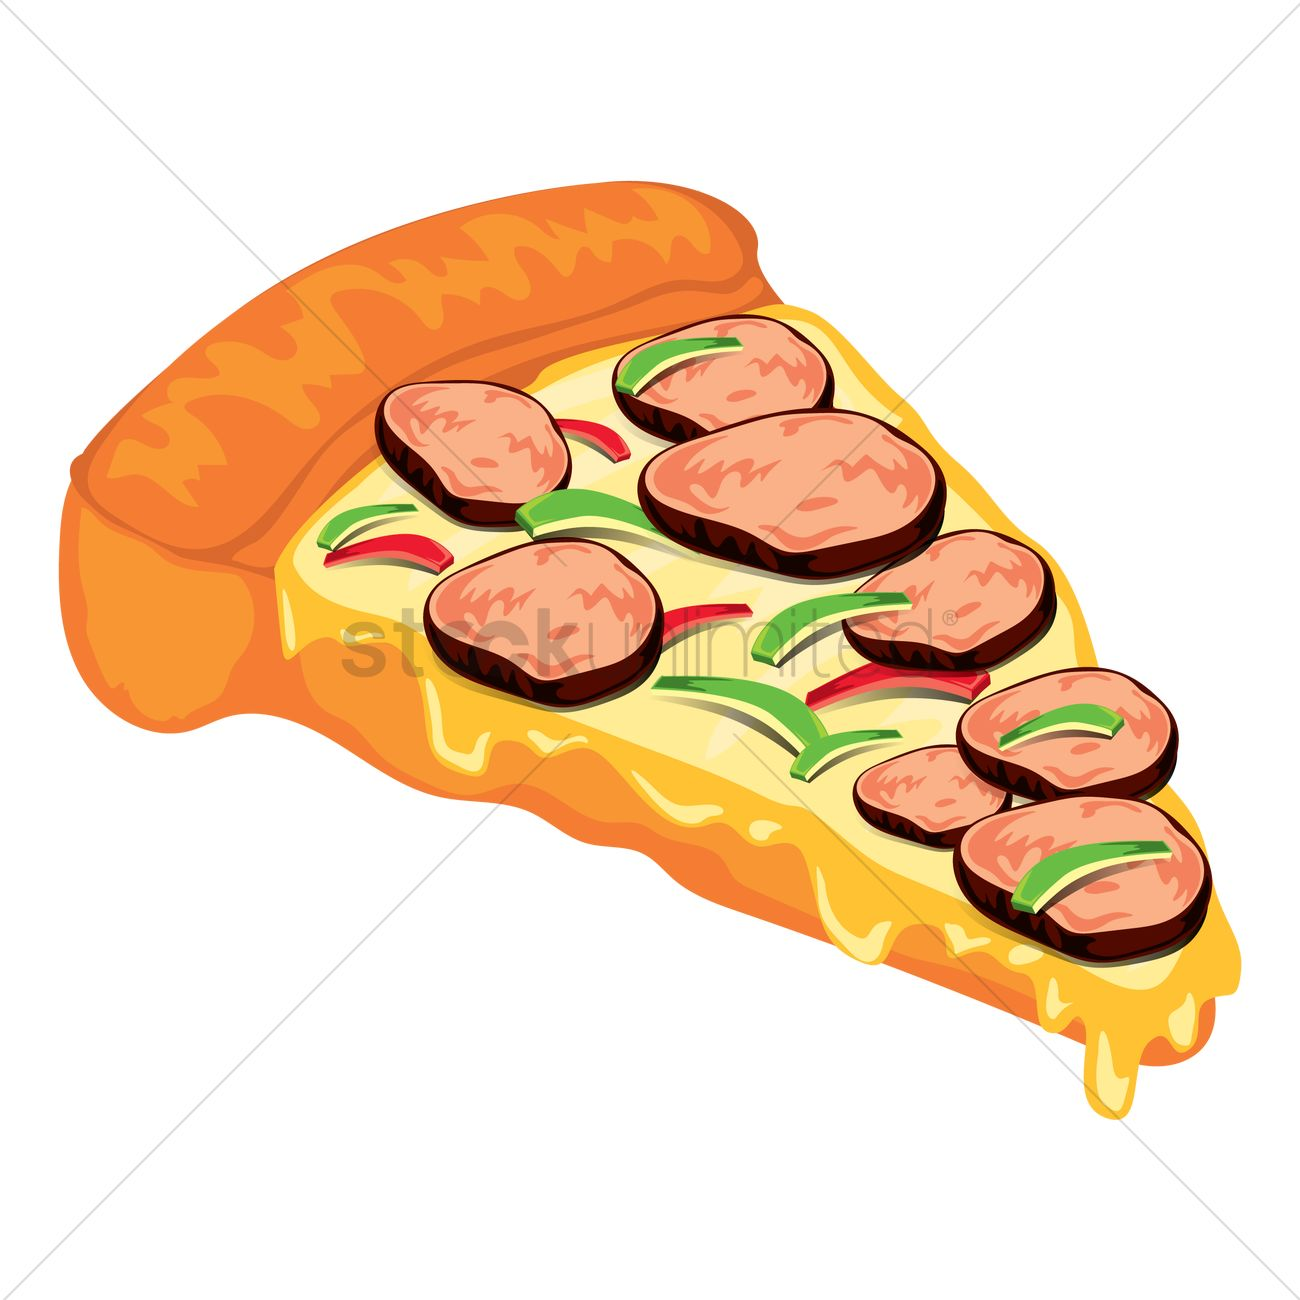 pizza slice vector image 1555863 stockunlimited rh stockunlimited com pizza slice outline vector pizza slice vector png